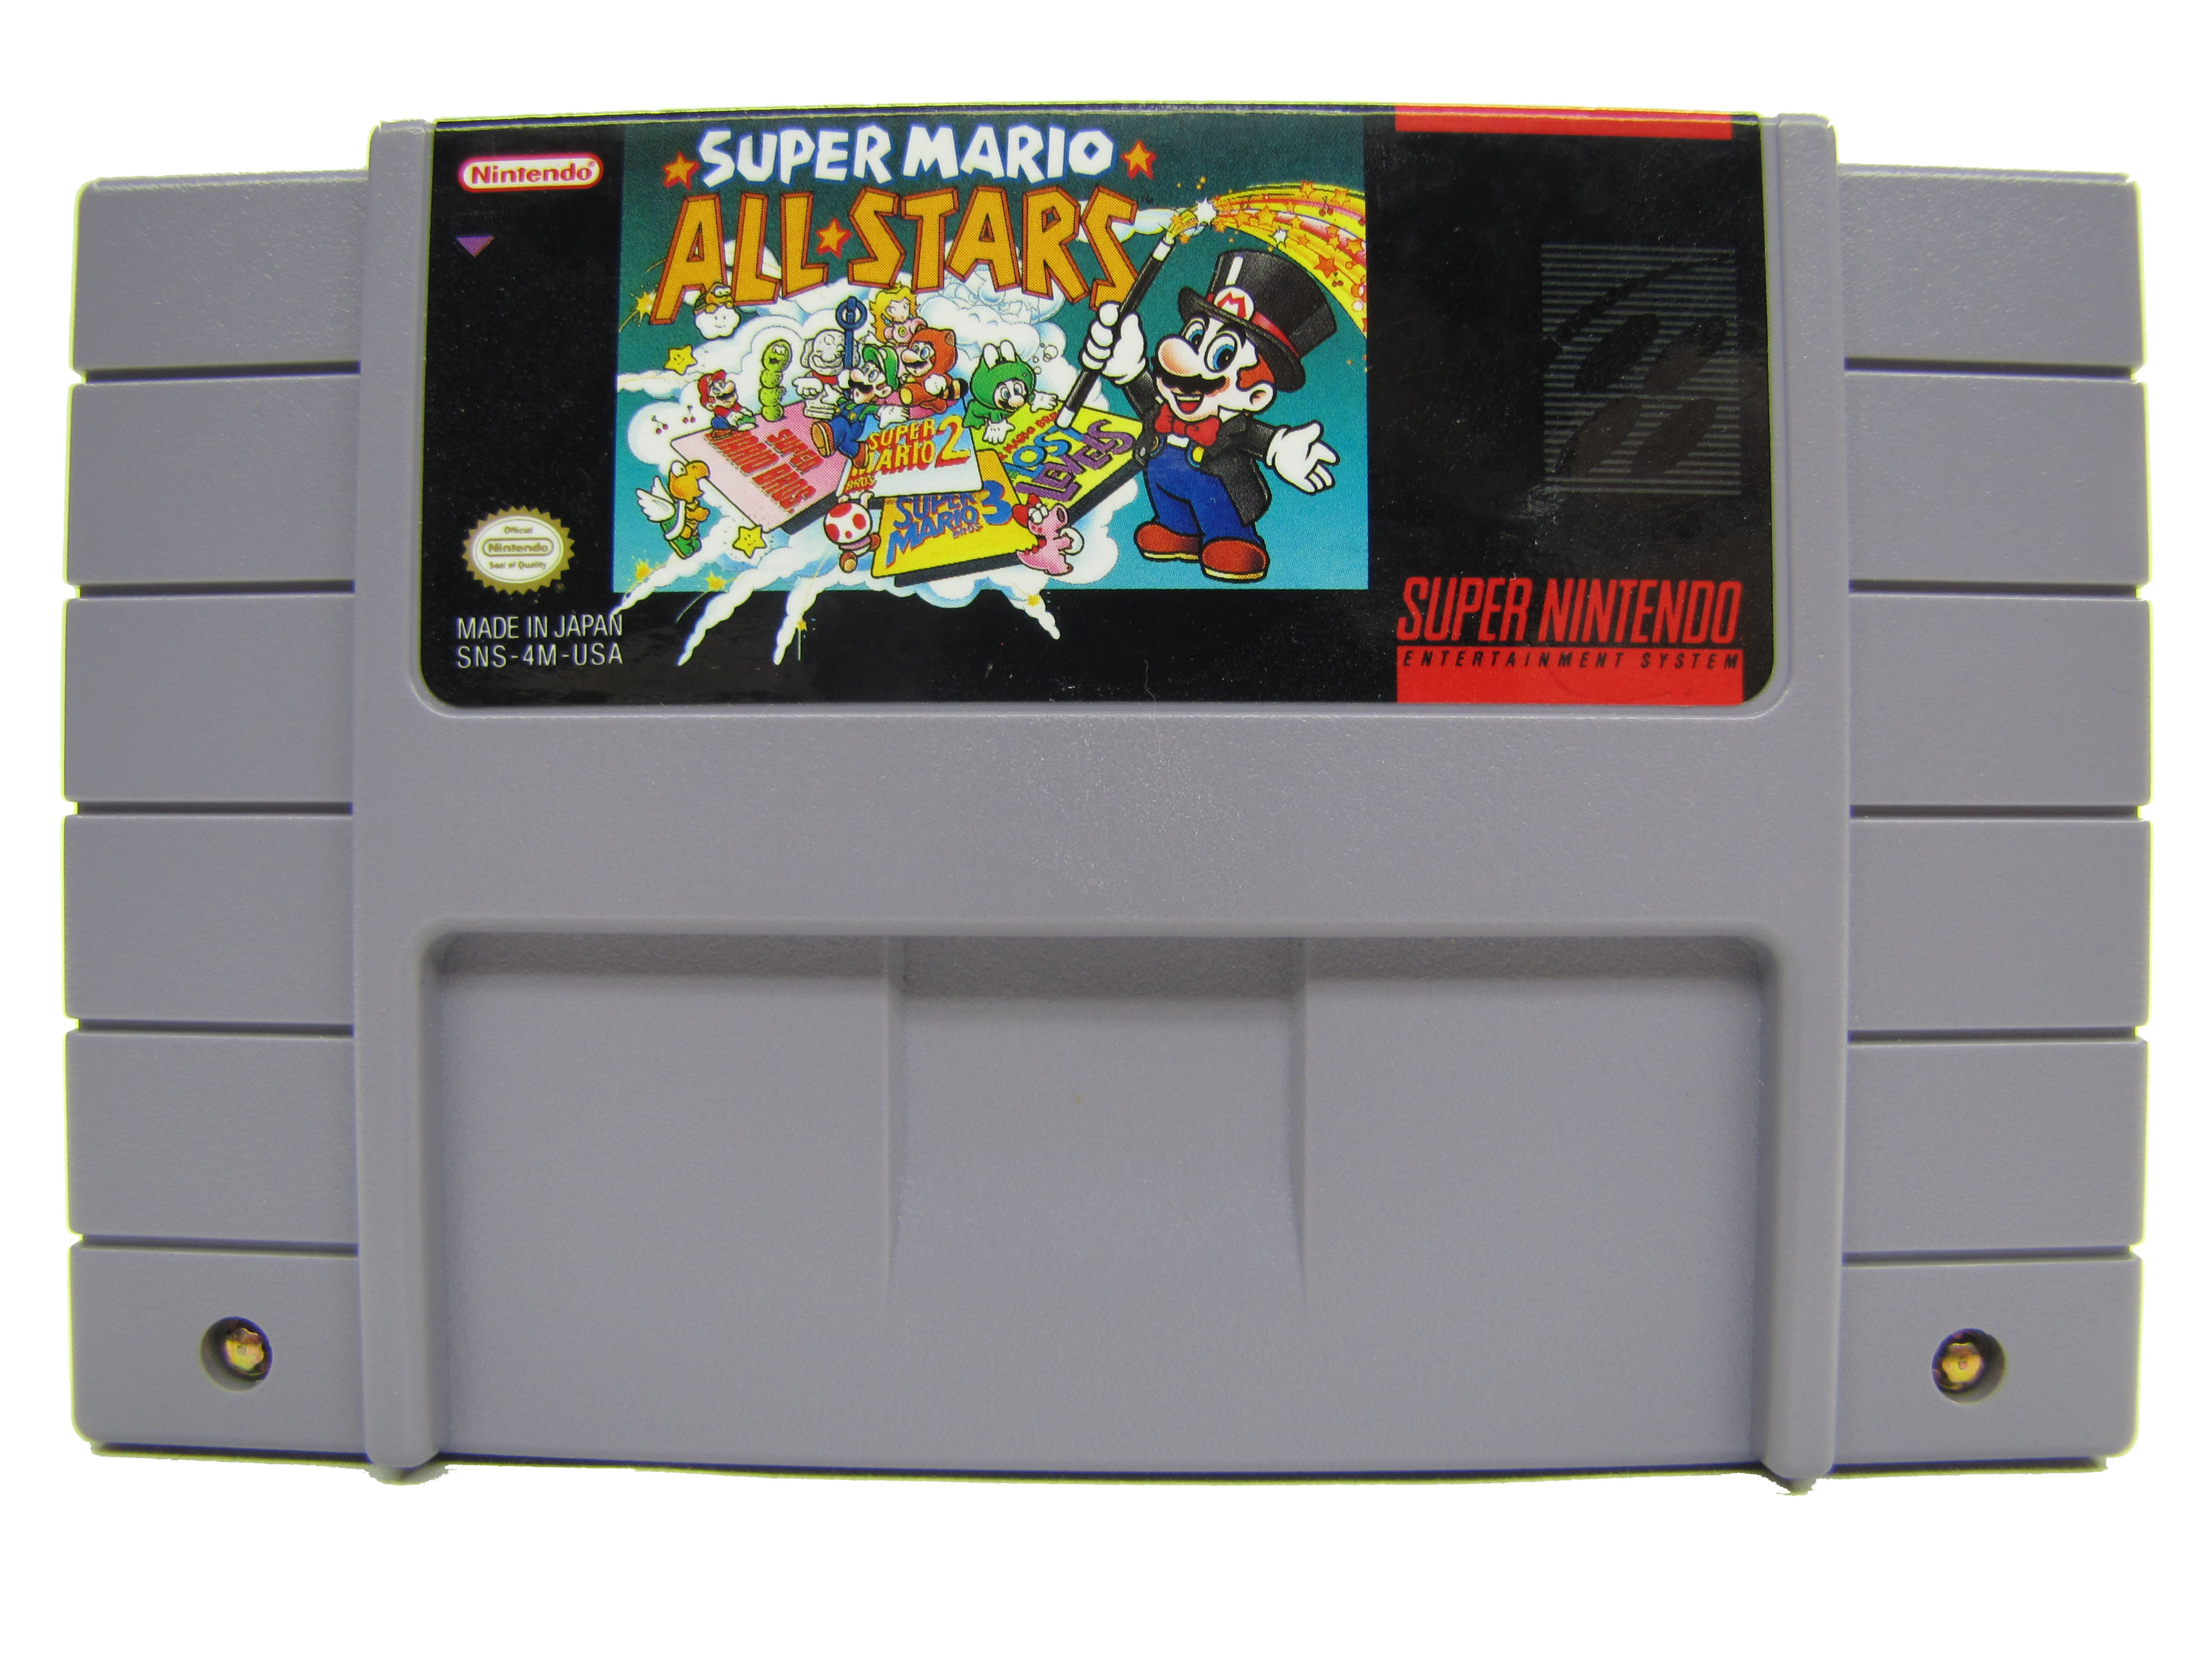 SNES Super Mario All-Stars - 1993